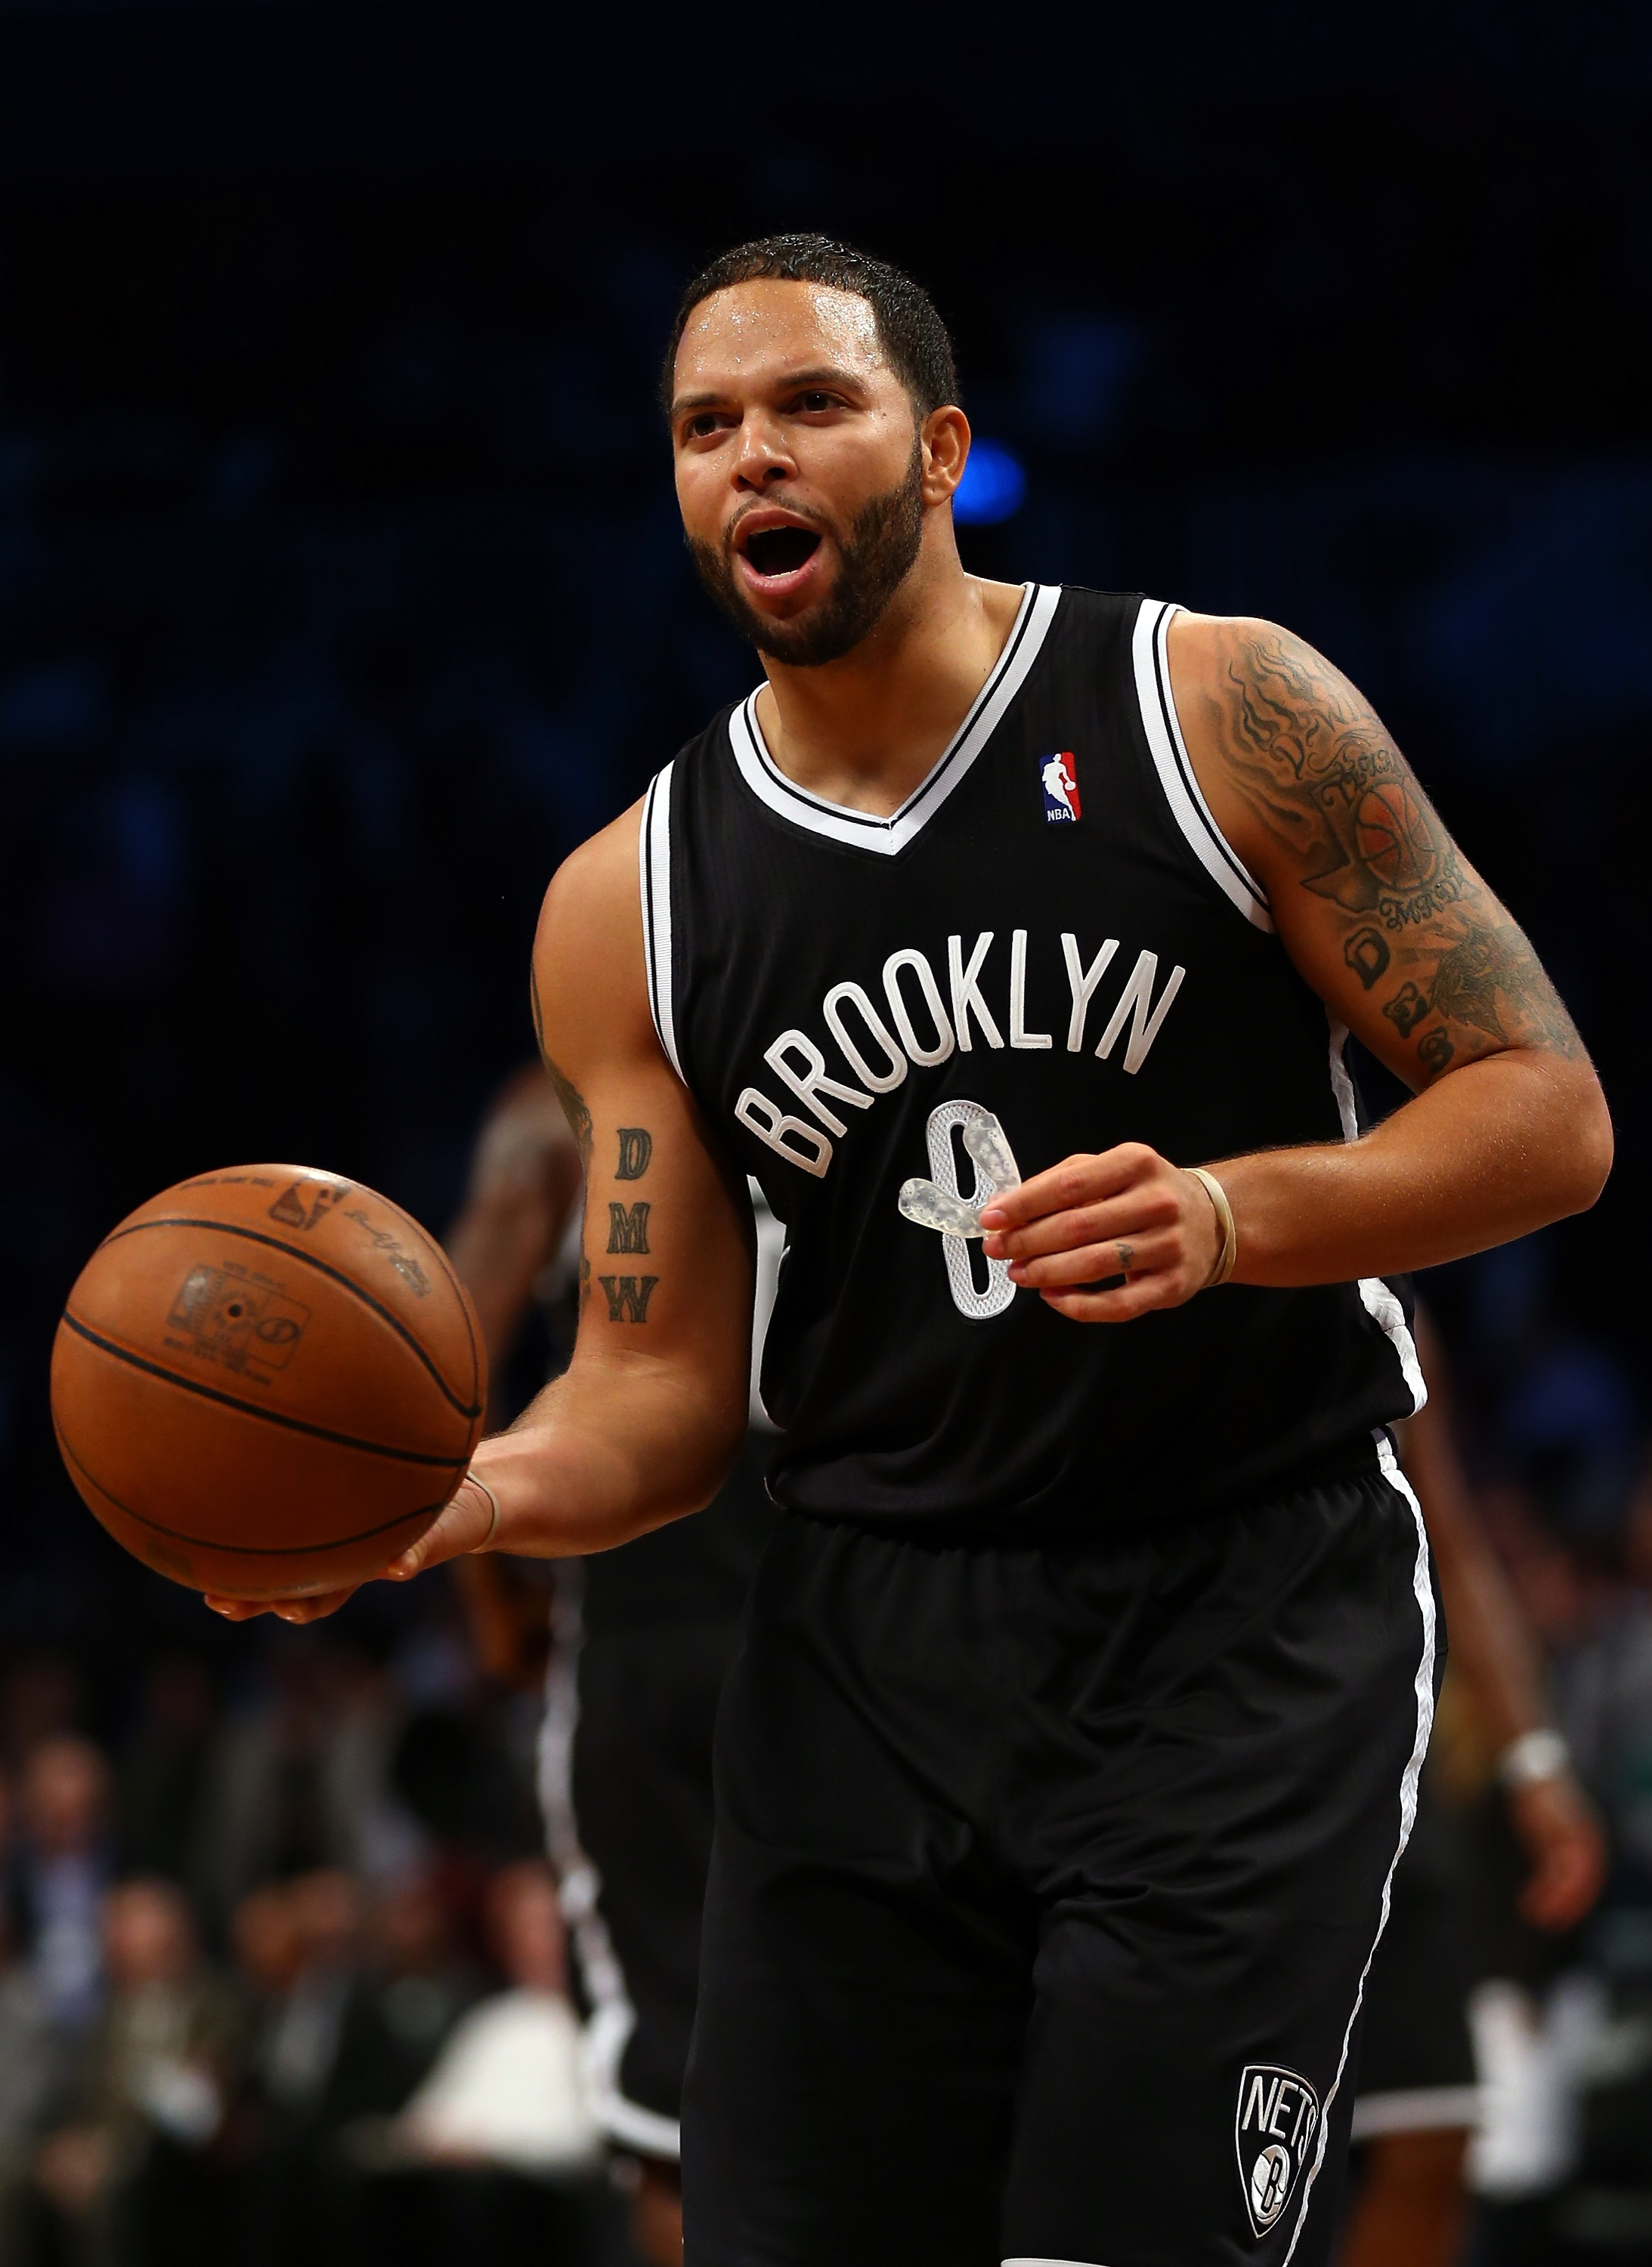 Deron Williams had 11 points and nine assists in the Nets' preseason victory. (Getty Images)